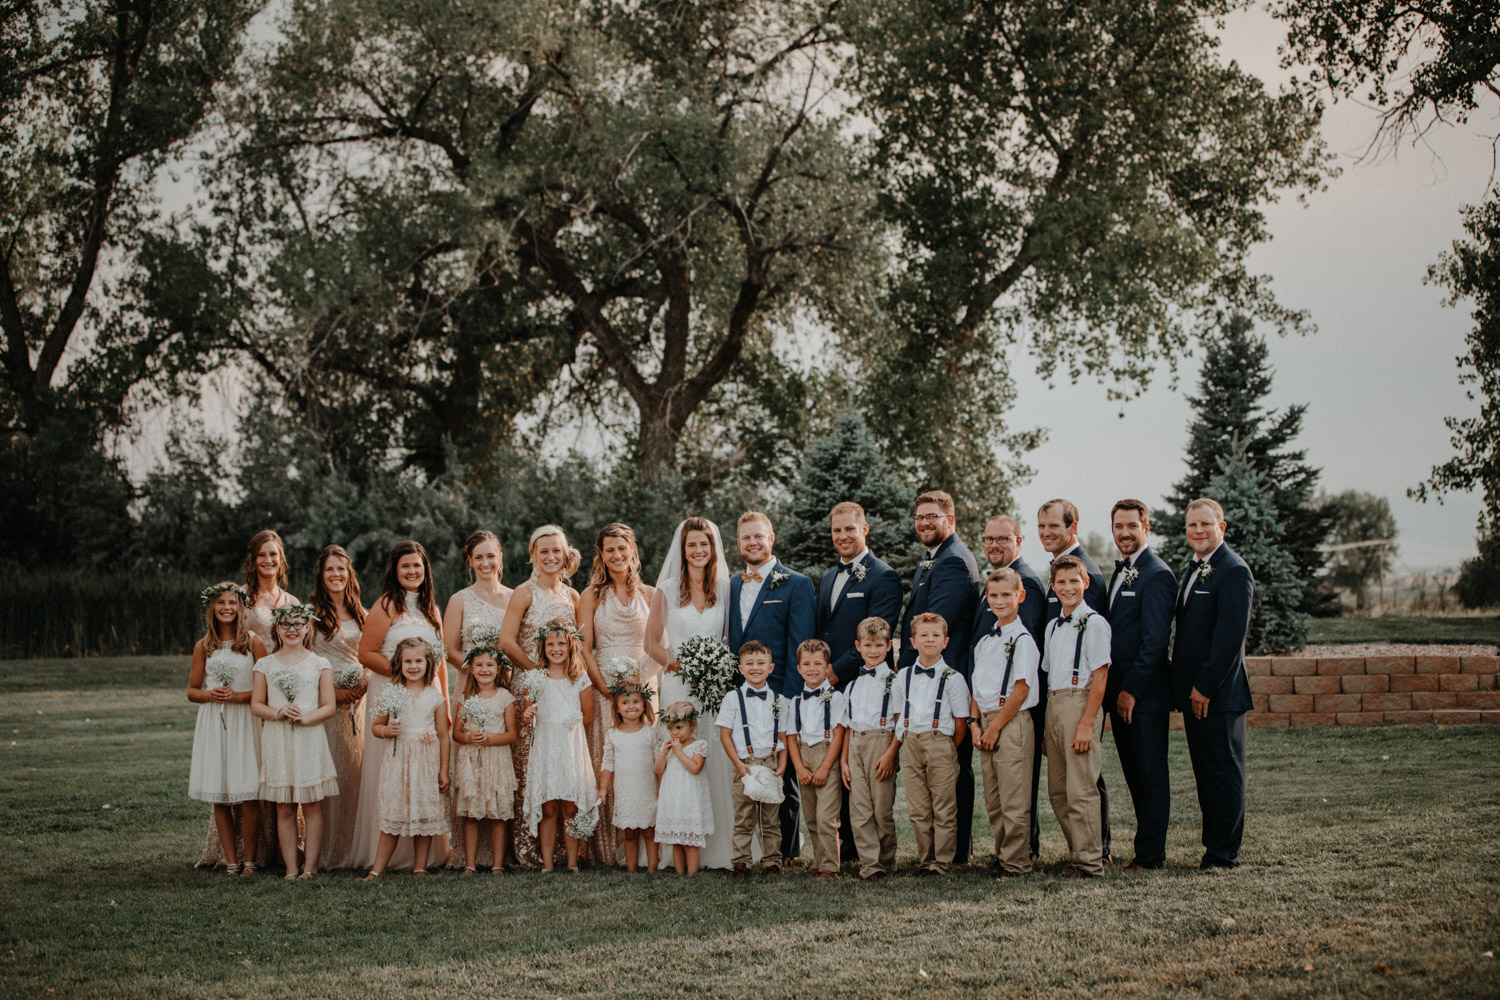 Tabitha Roth Hochzeitsfotografin Schweiz USA Colorado destination wedding outdoor Zeremonie Trauung bridal party